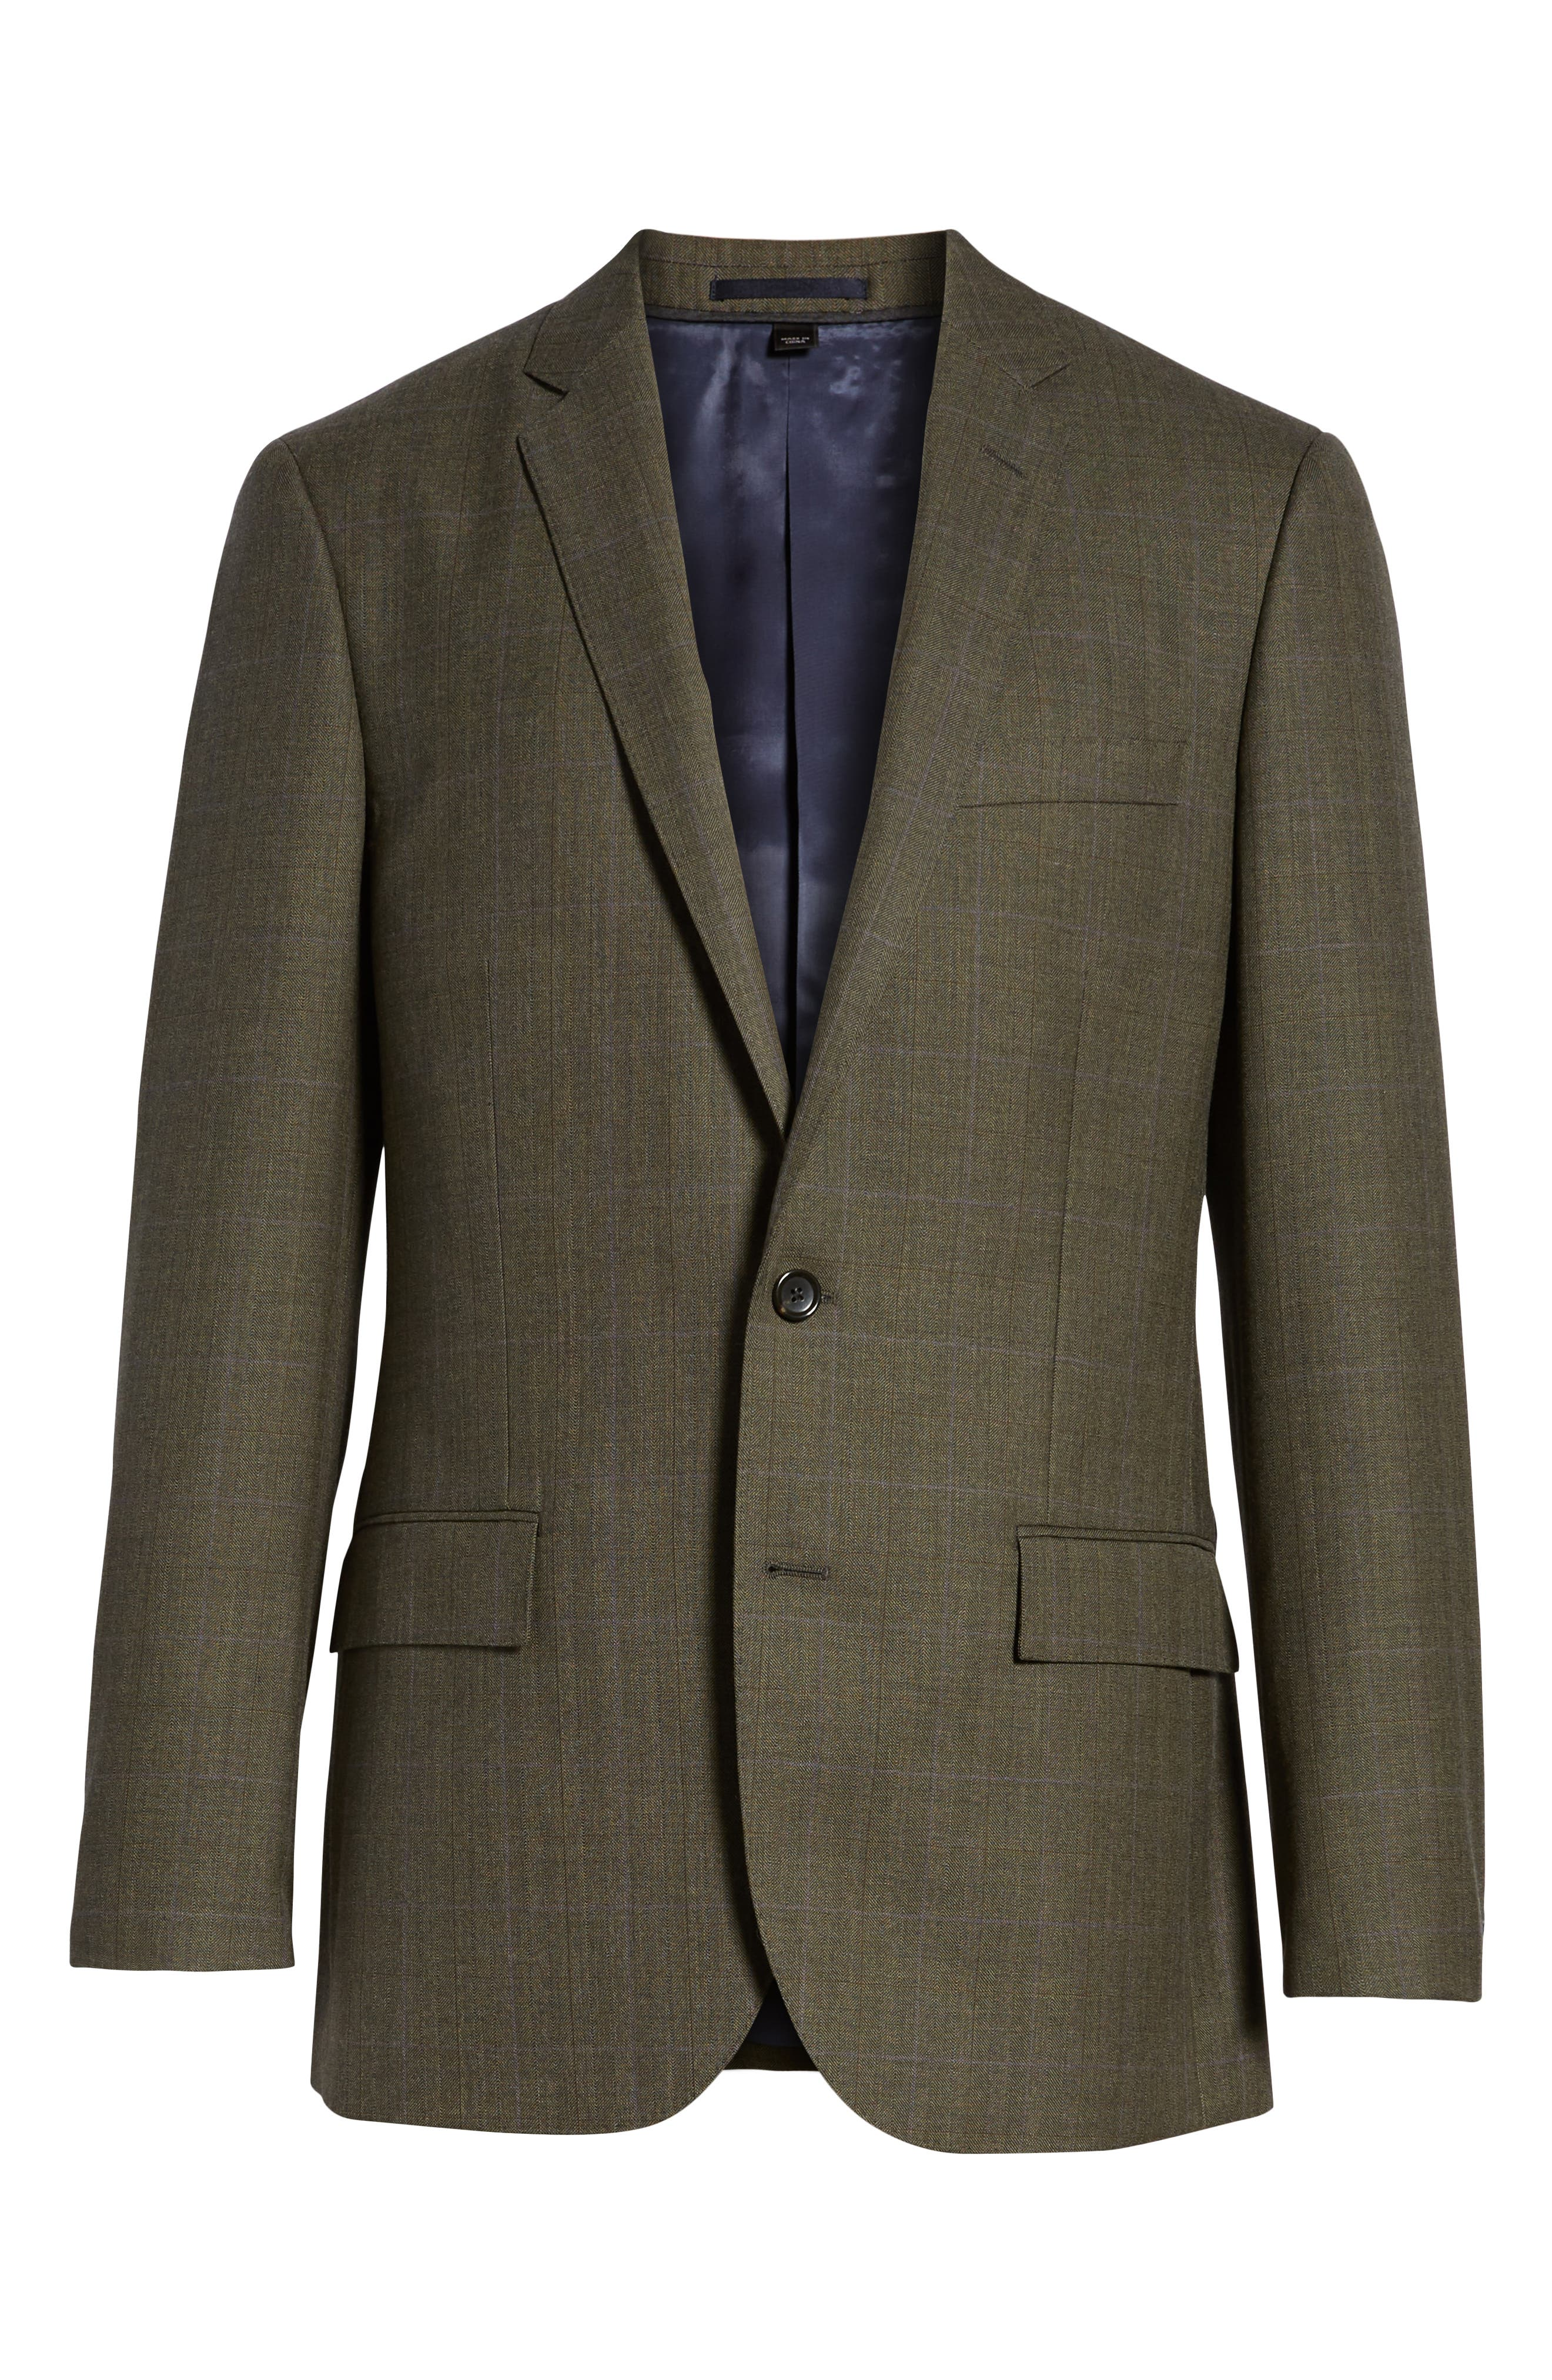 Ludlow Trim Fit Herringbone Wool Sport Coat,                             Alternate thumbnail 5, color,                             301